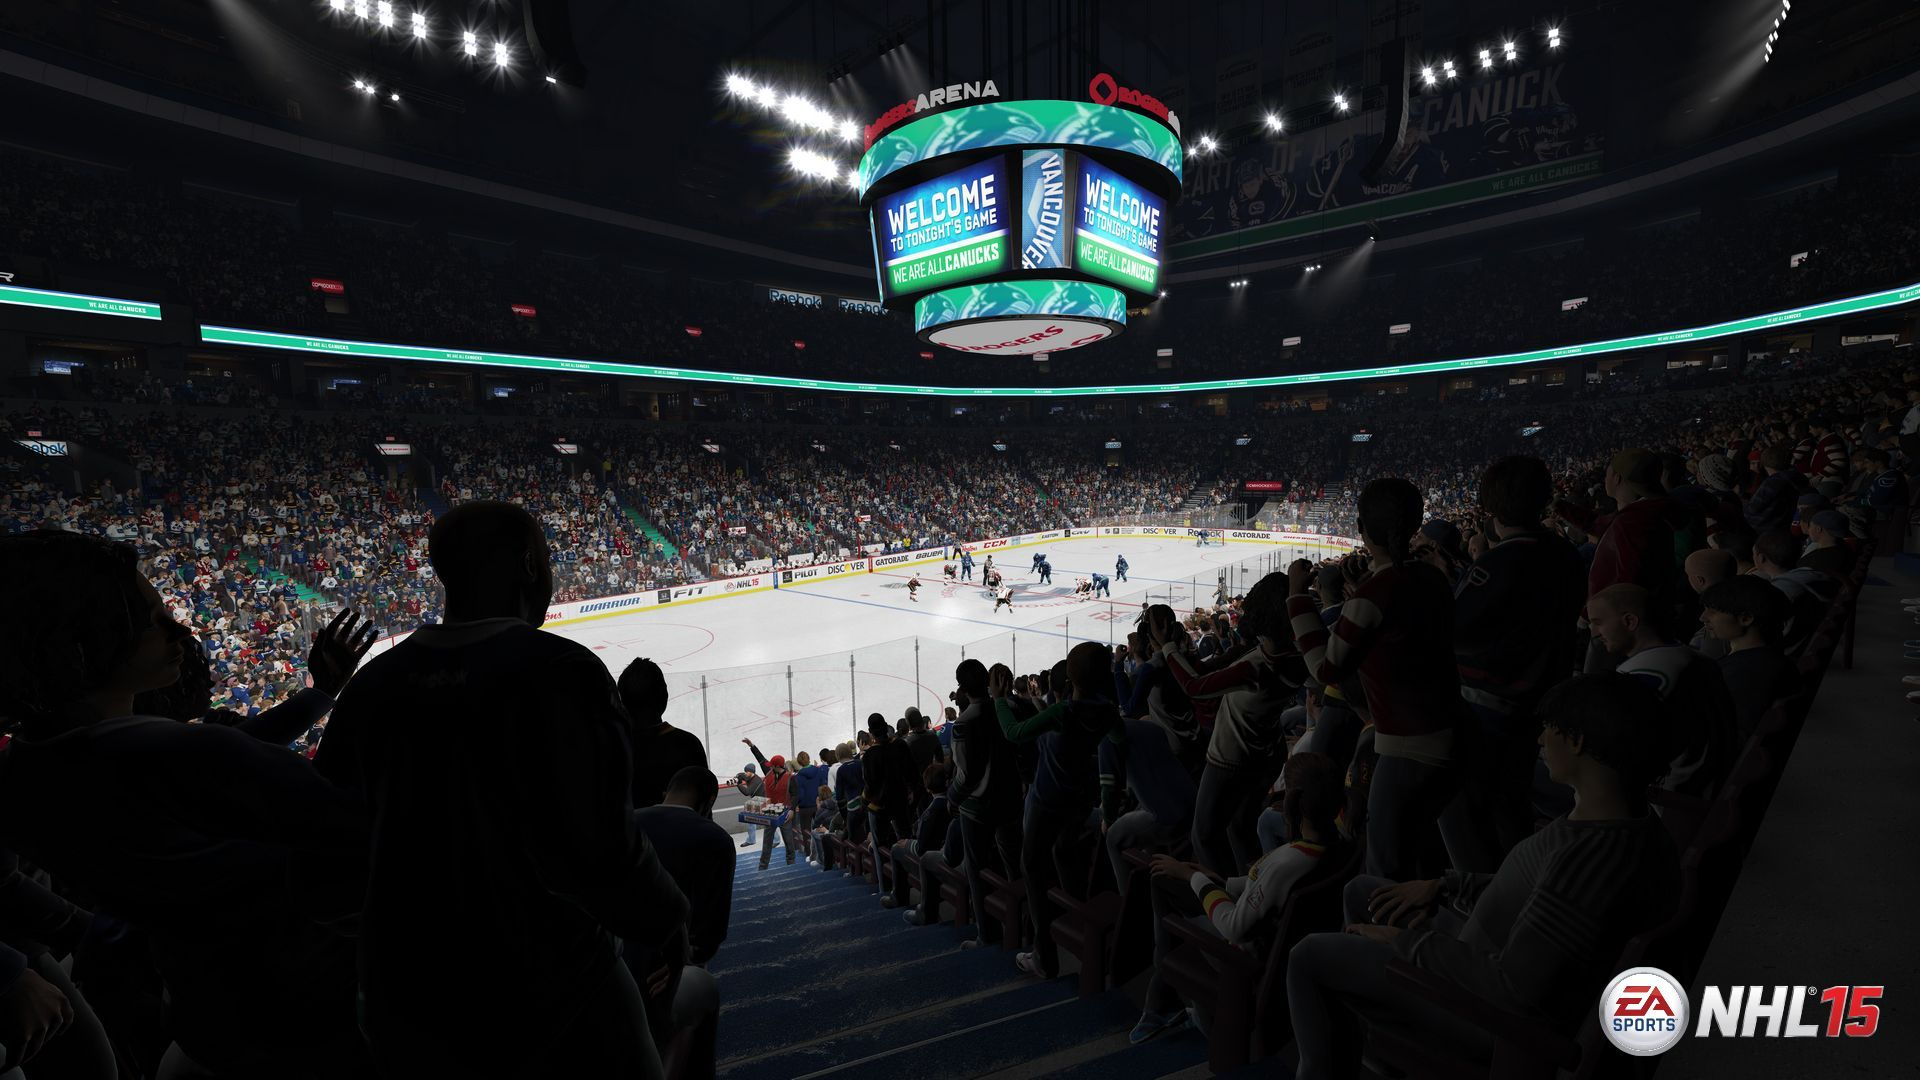 NHL 15 - Rogers Arena  Home Ice: Vancouver Canucks Location: Vancouver, British Columbia Opened: September 21, 1995.